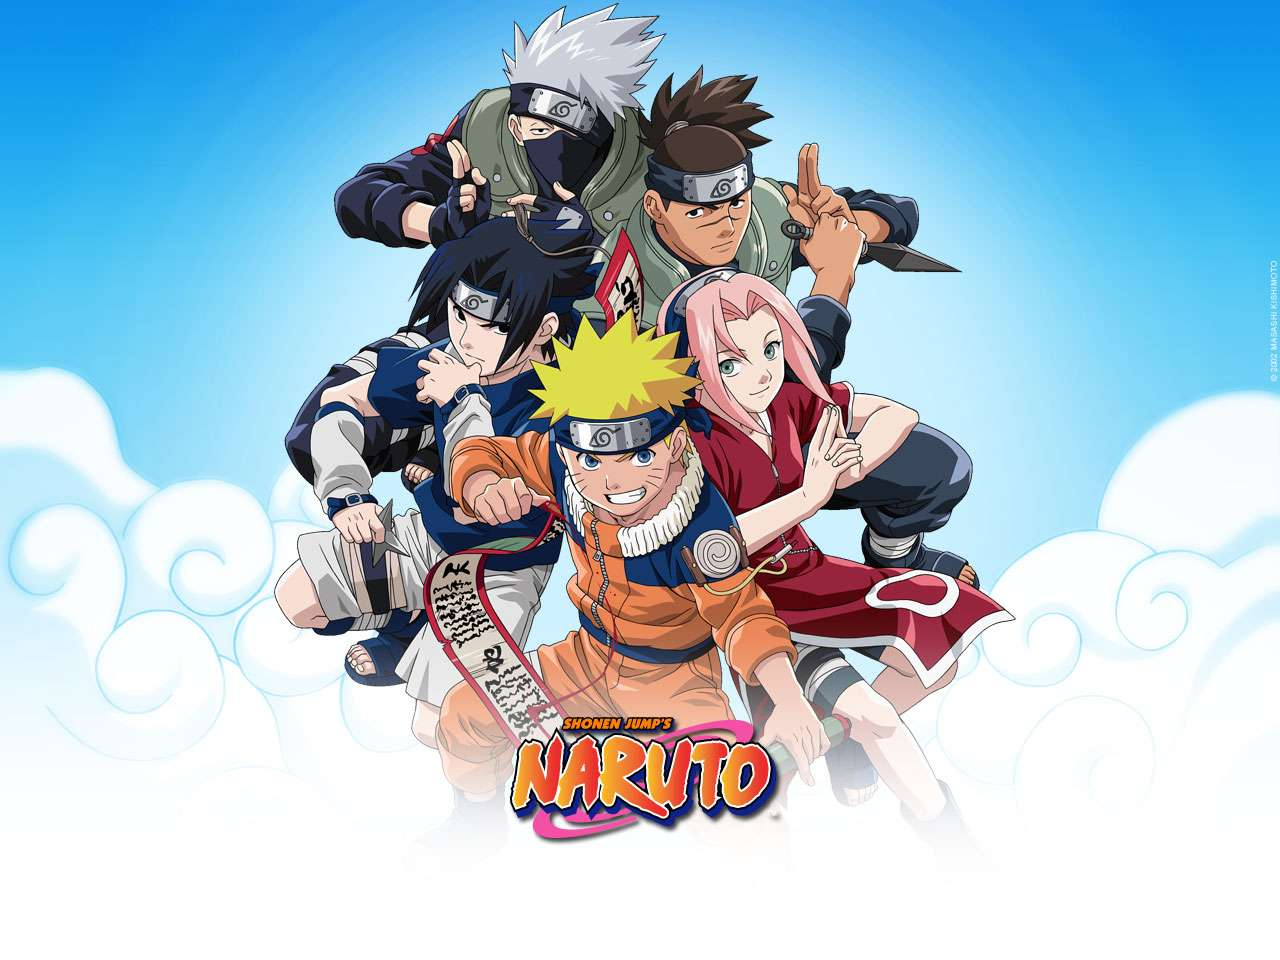 Naruto Season 1 Episode 109